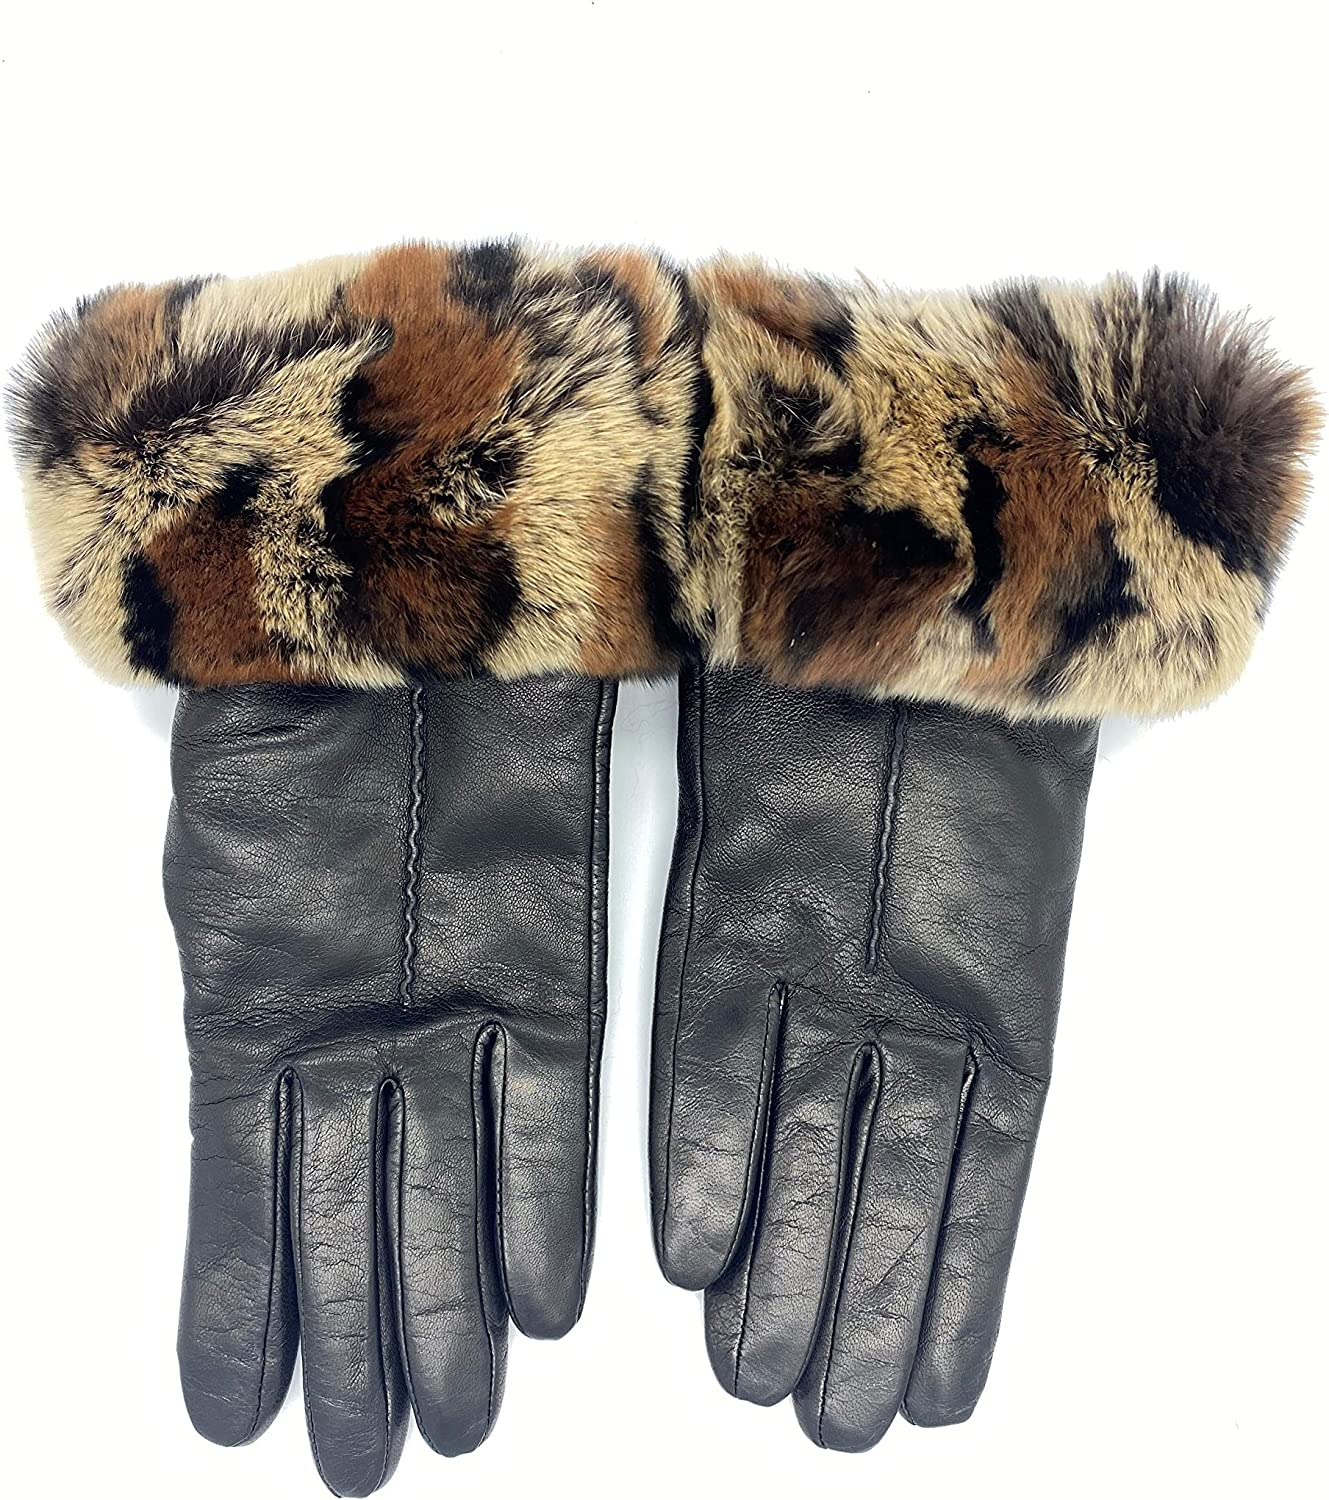 Women's Leather Gloves Made In Italy Rabbit Fur Cuff Cashmere Lined (Medium, 7)